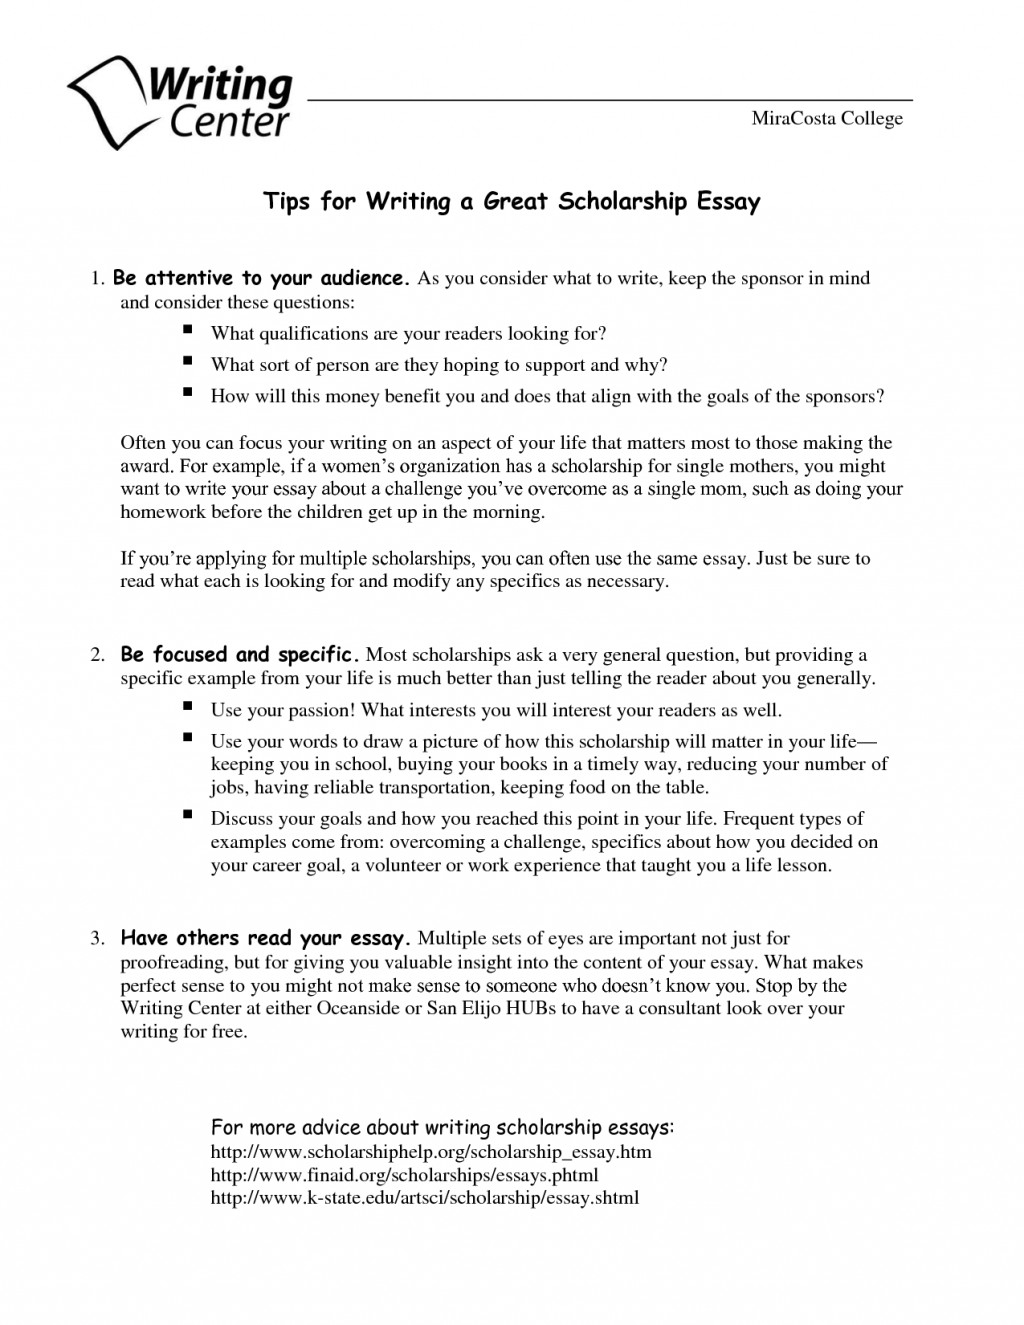 027 Writing Scholarship Essay Structure Format Free Letter Templates Online Jagsa Us College Questions N8cud Winning About Yourself Application Excellent A Good Your Goals Large